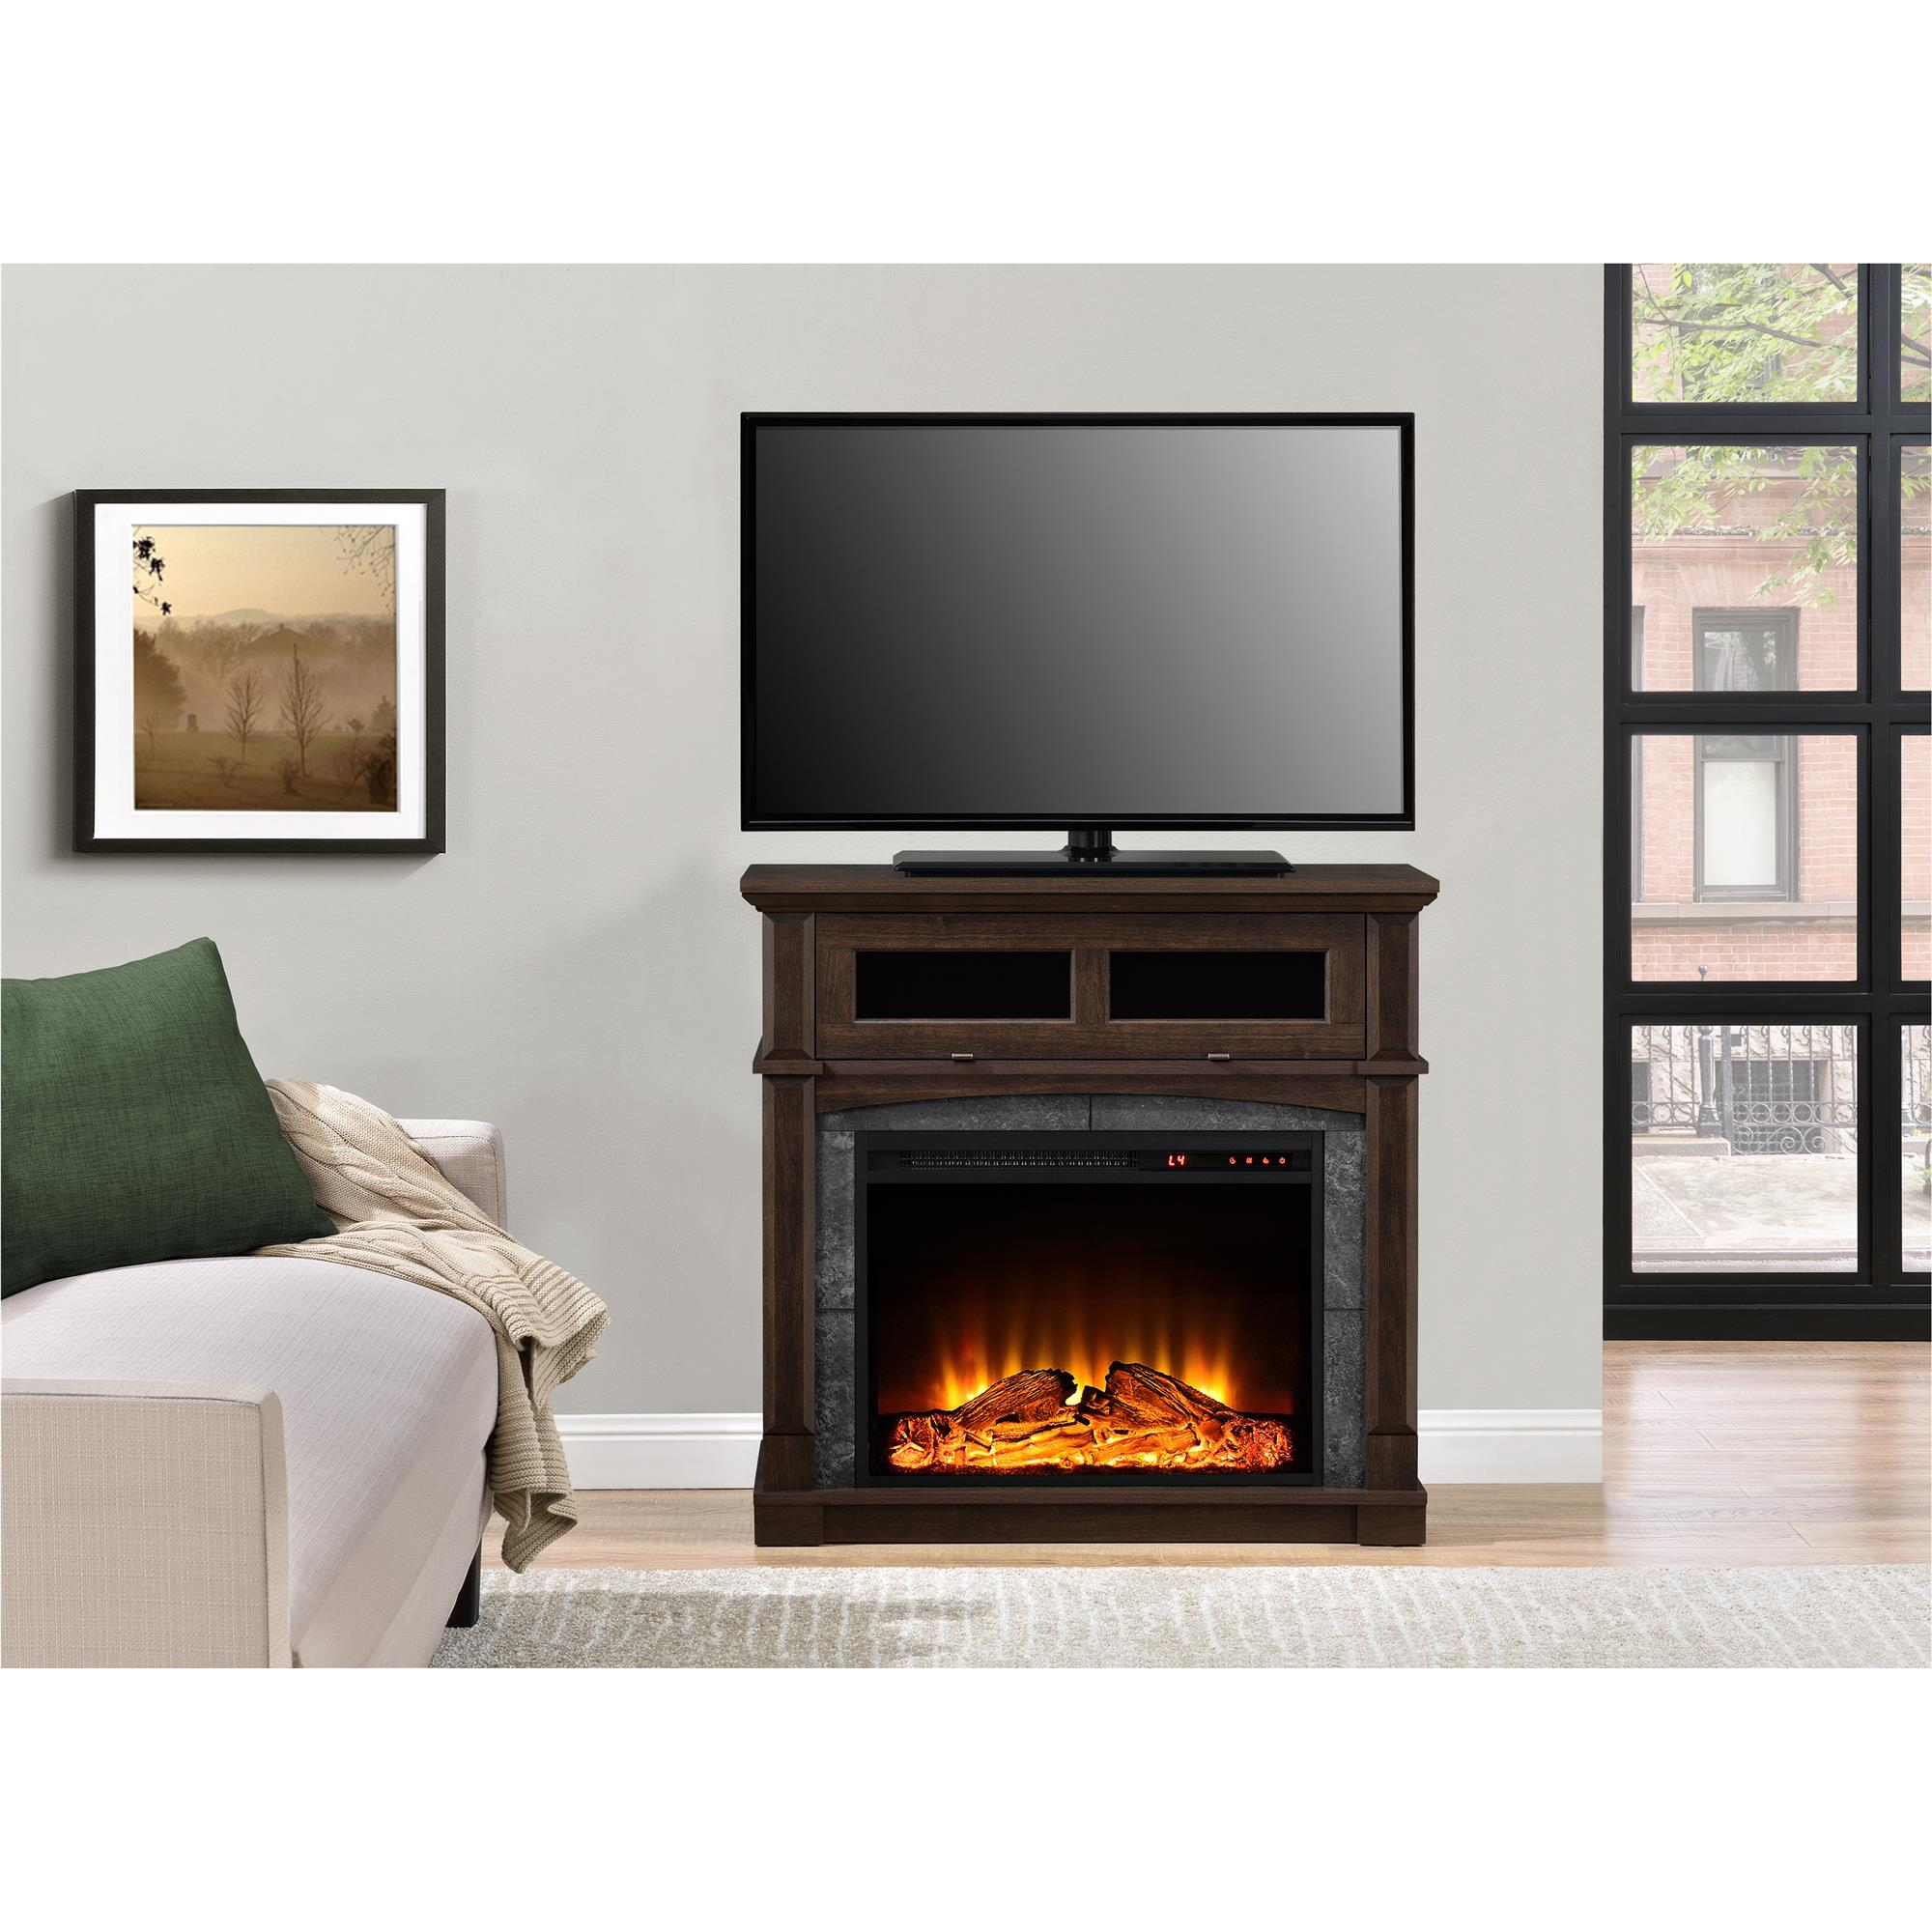 "Ameriwood Home Thompson Place Media Fireplace for TVs up to 37"", Cherry"